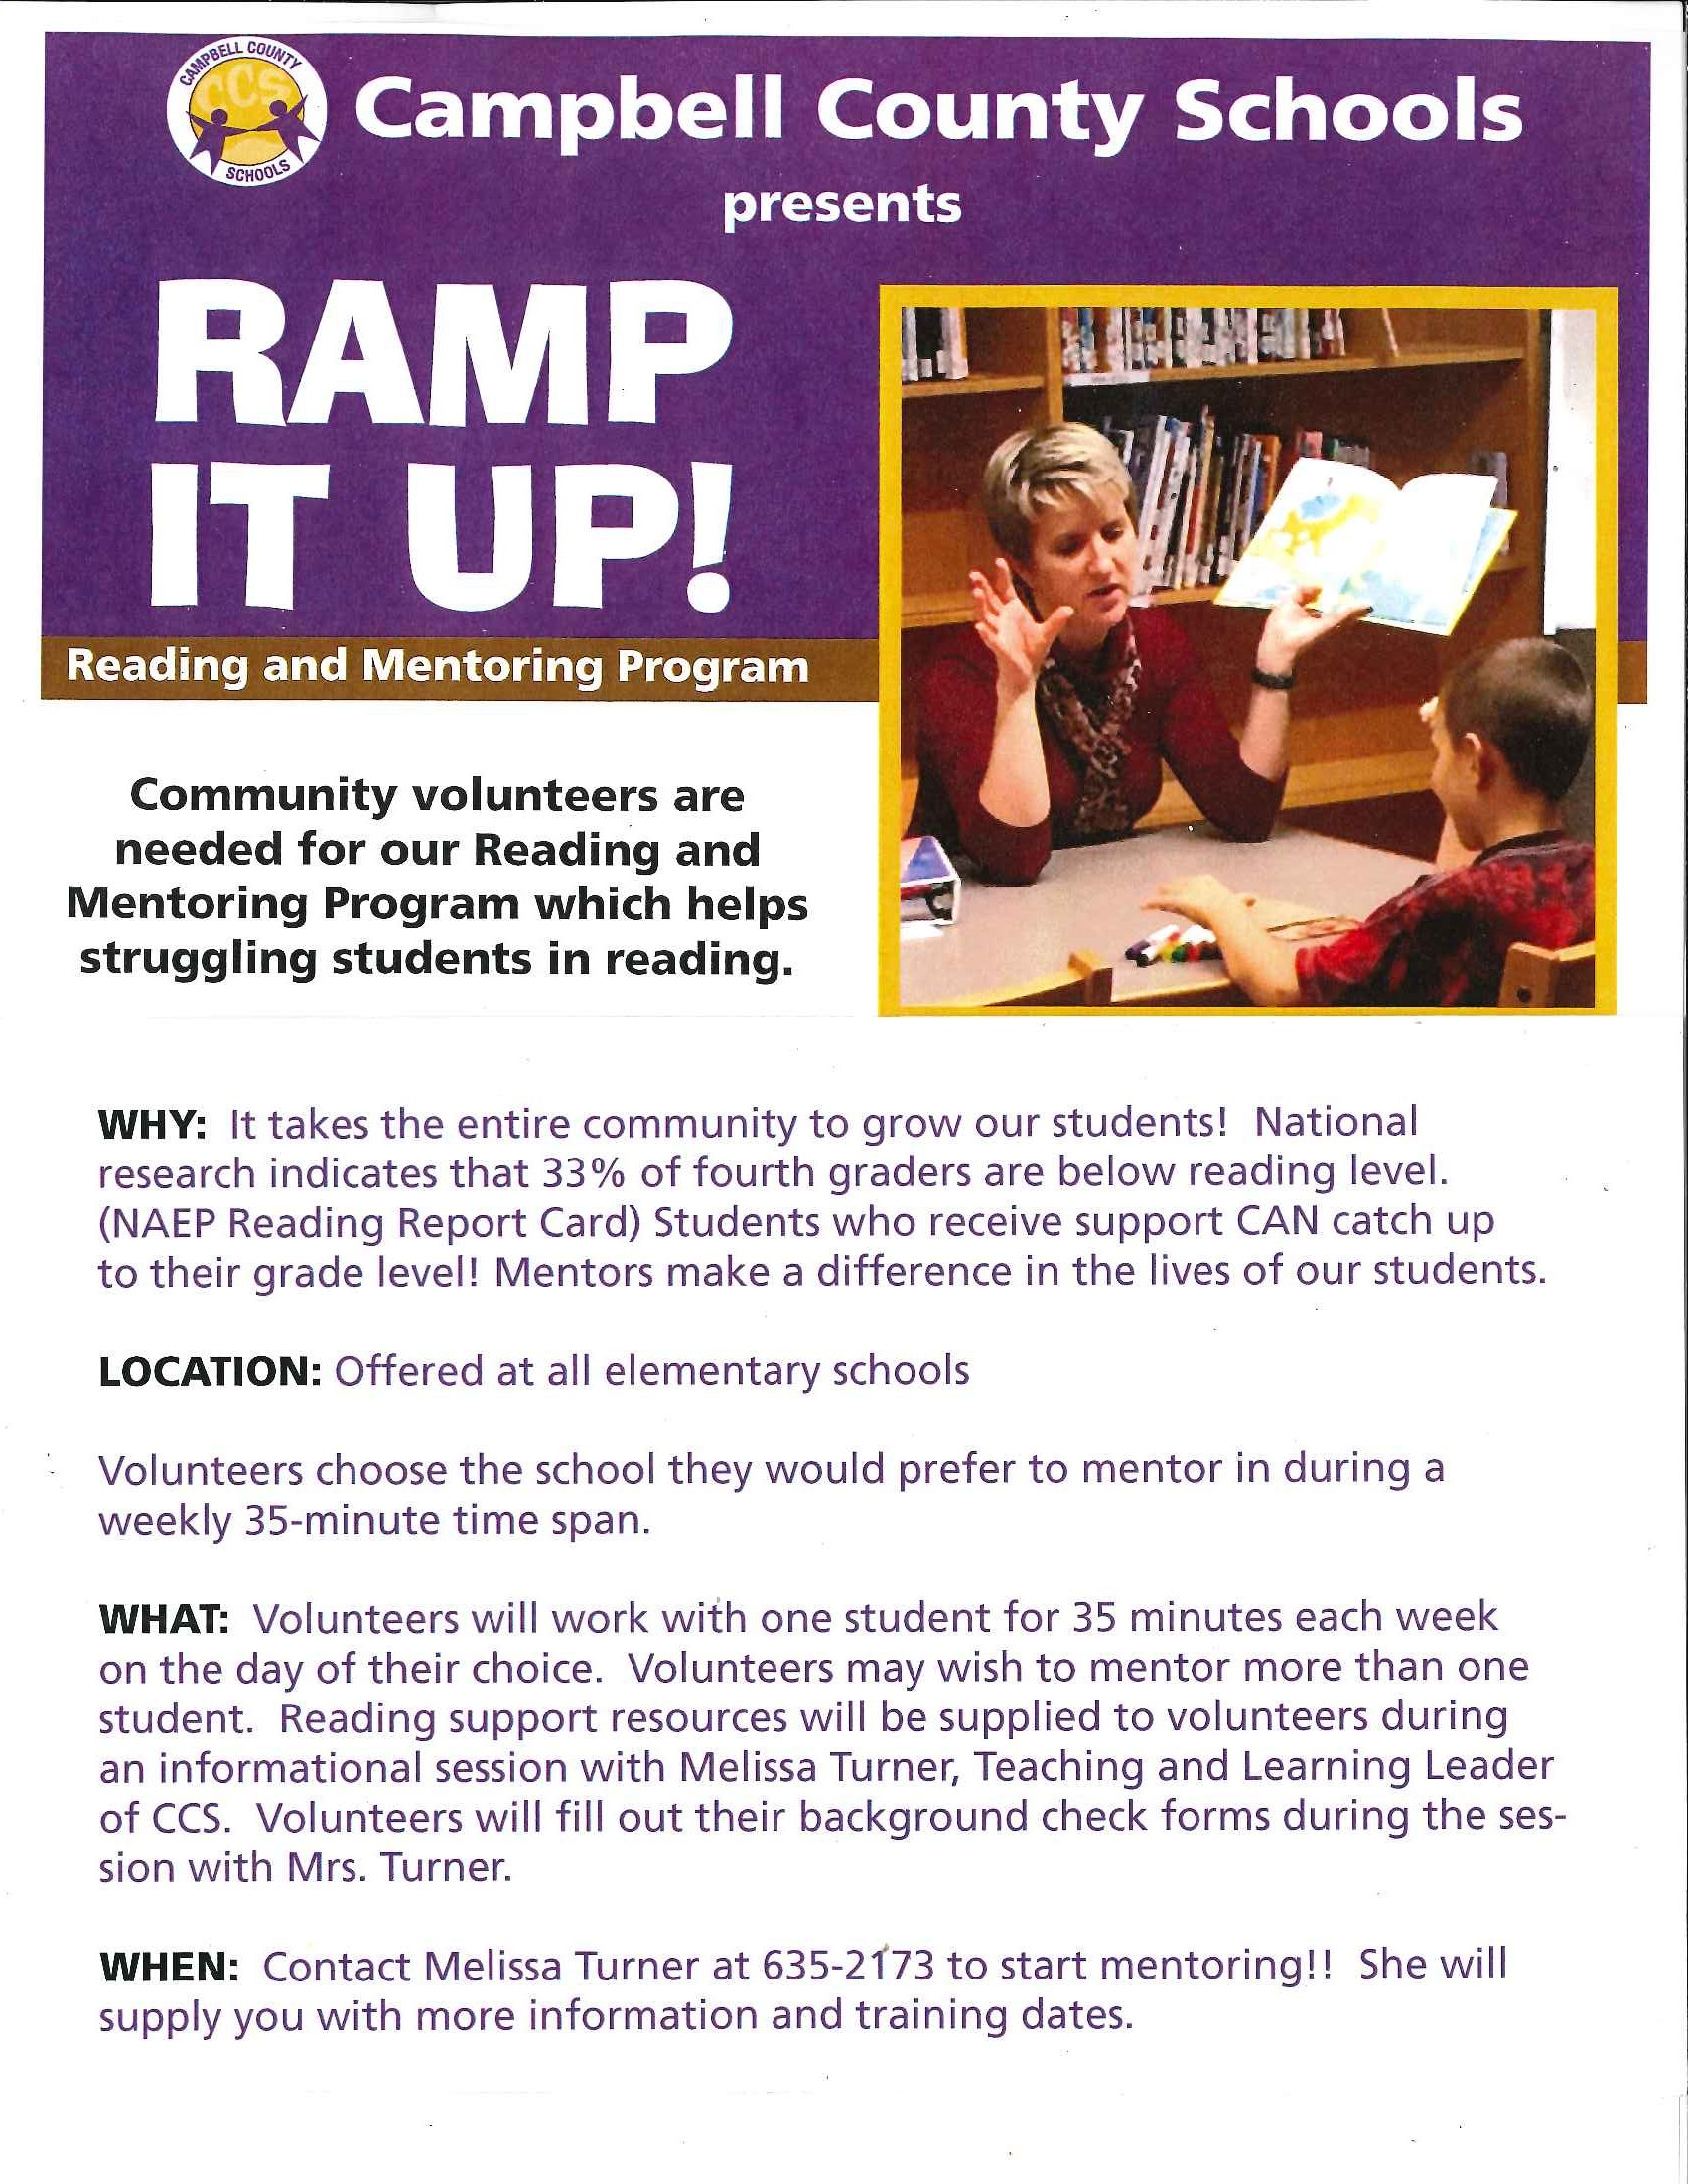 Community Volunteers are needed for CCS Reading and Mentoring Program  Posted On: Friday, July 13, 2018